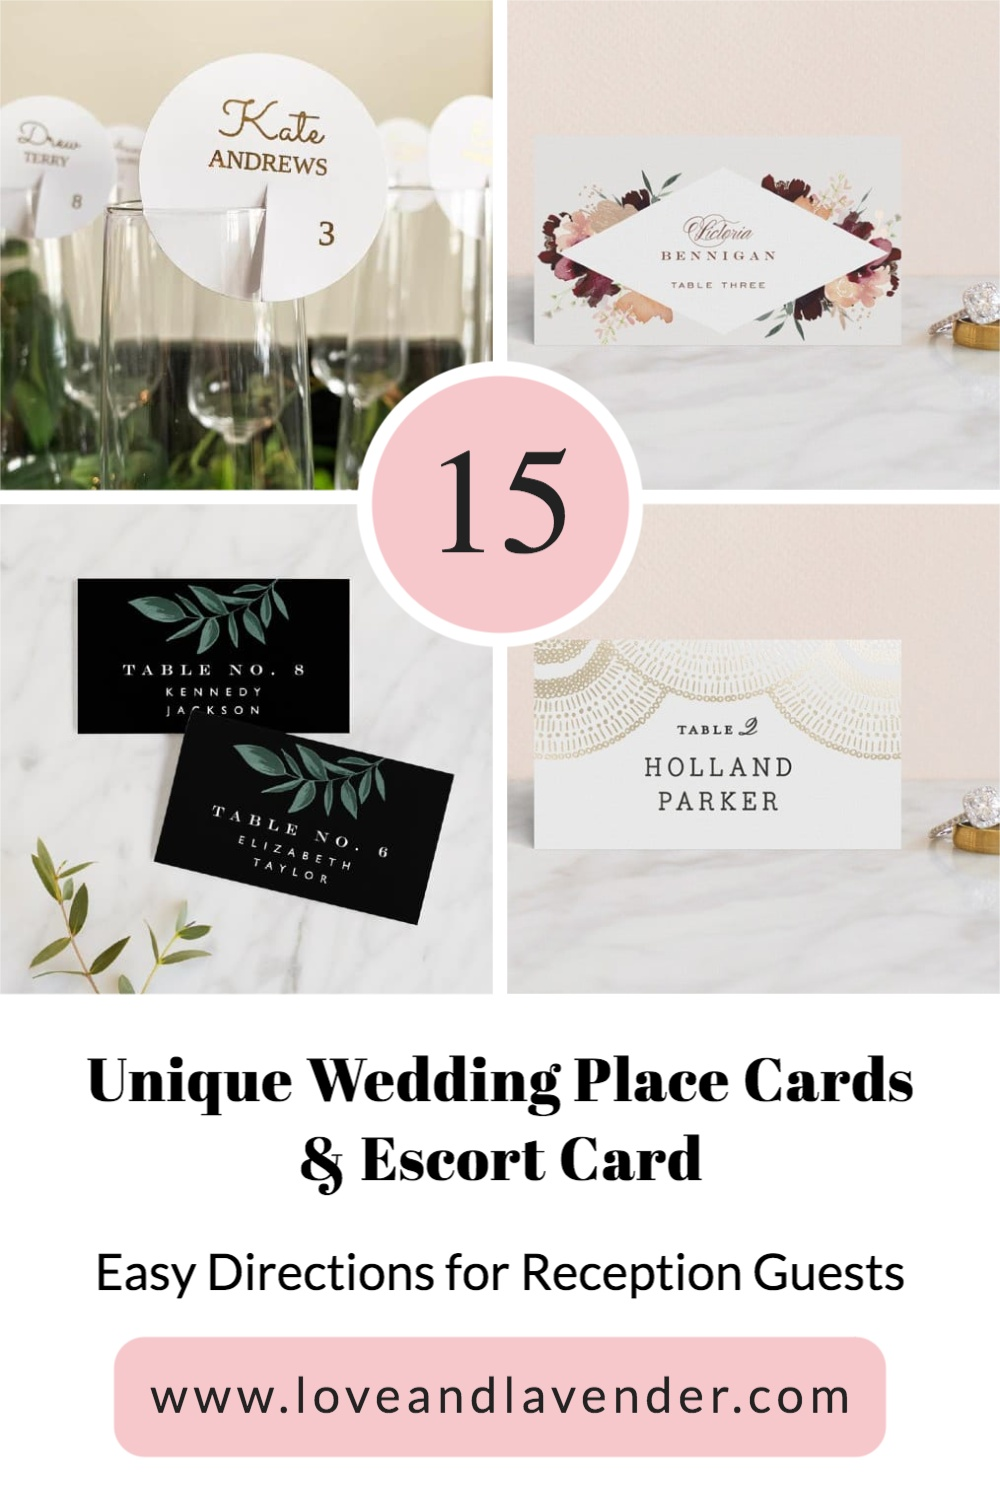 pinterest pin - wedding place cards and escort cards